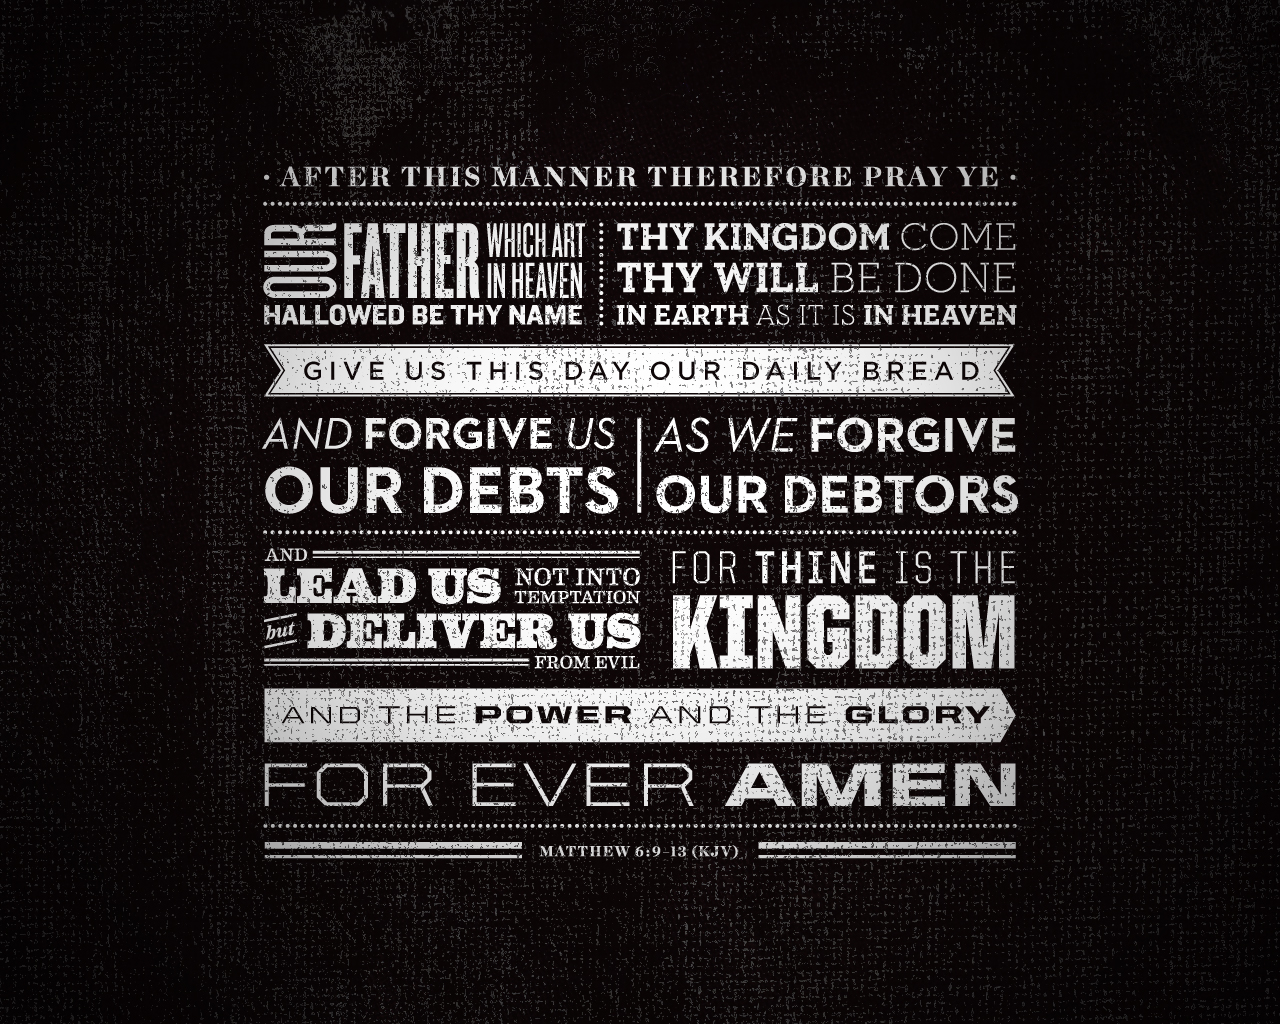 https://cardiphonia.files.wordpress.com/2012/11/the-lords-prayer_1280x1024-black.jpg